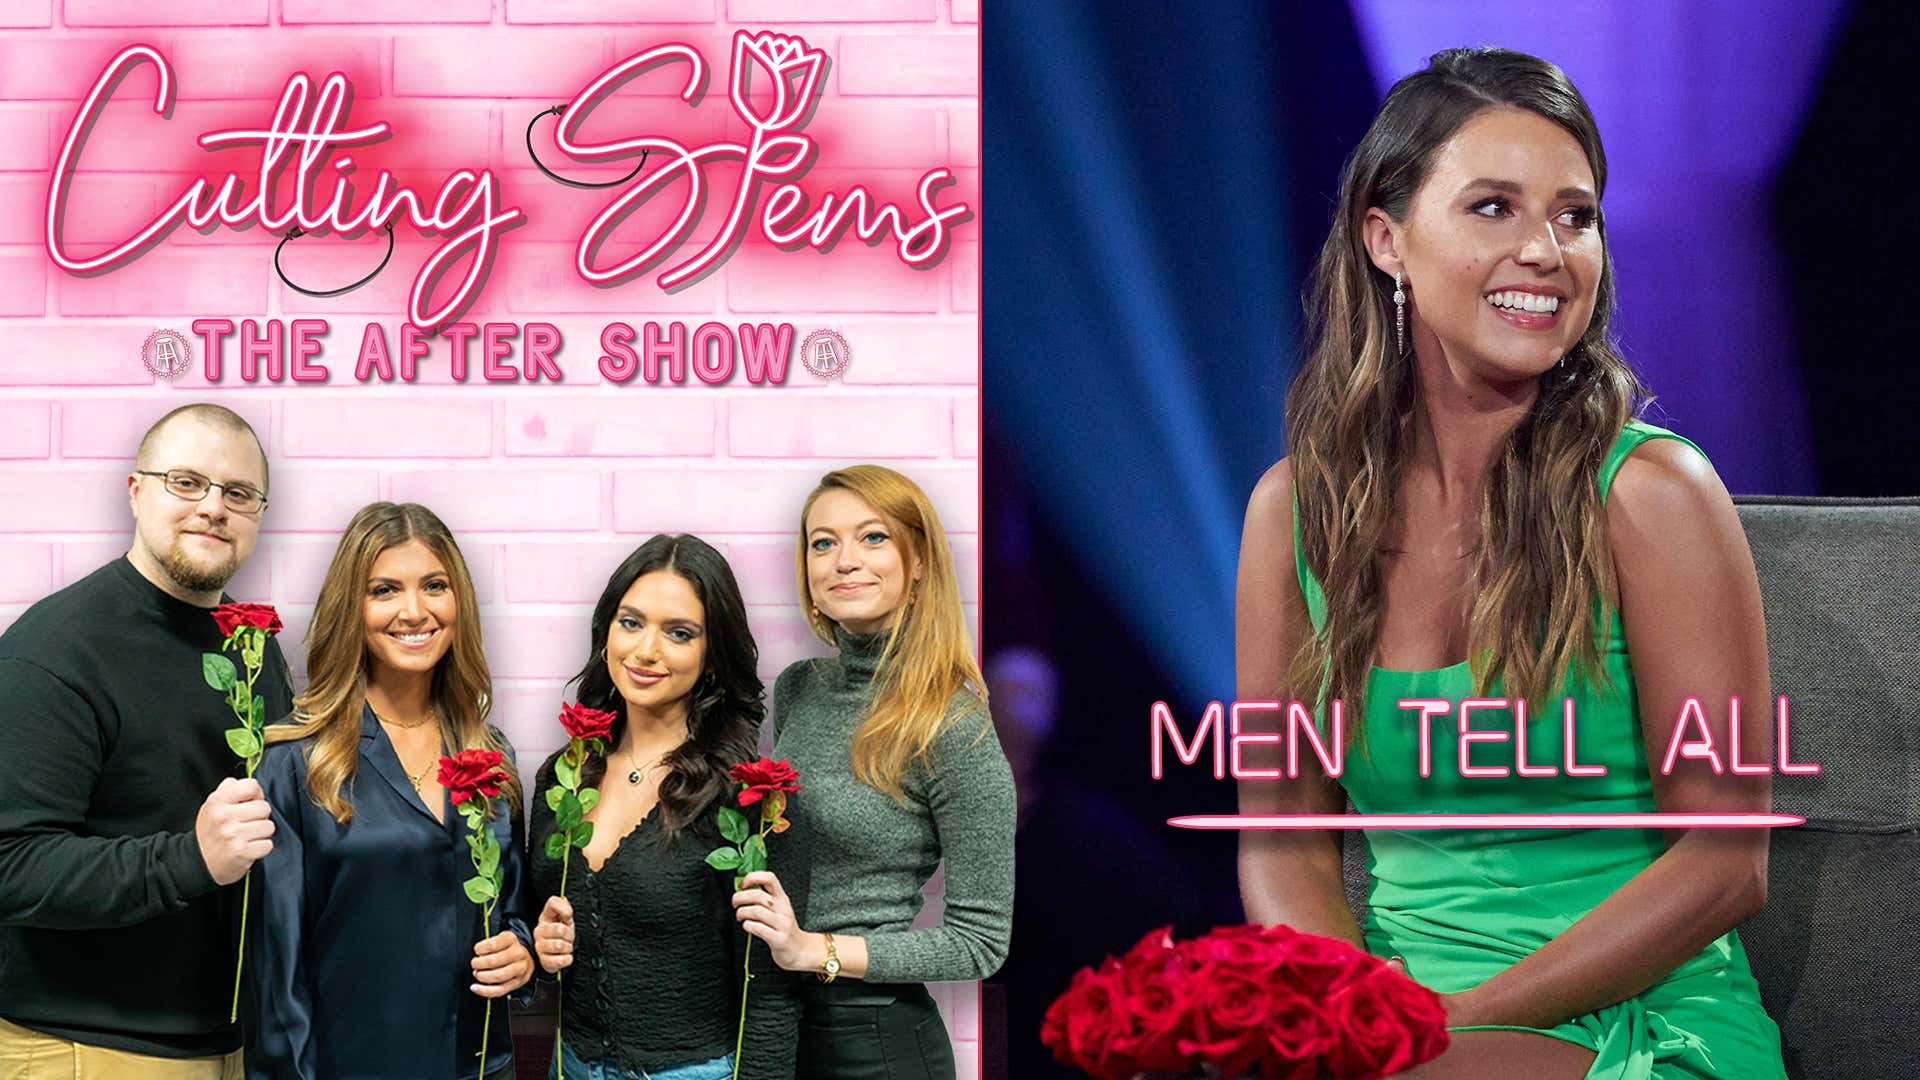 LIVE Reaction to The Bachelorette Men Tell All: Cutting Stems